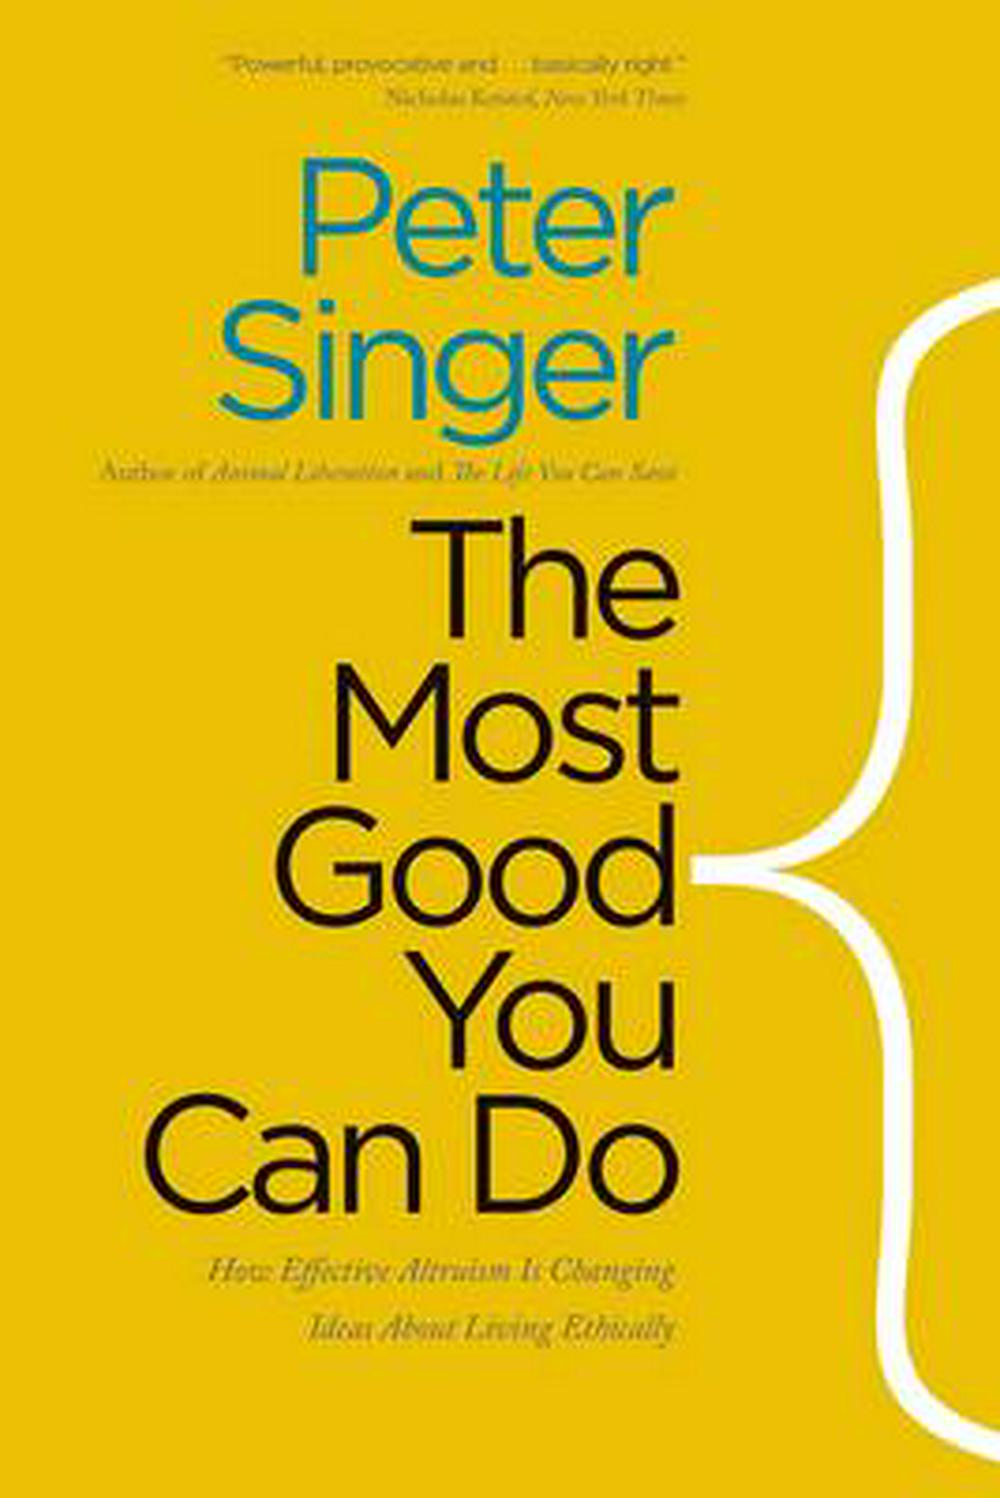 The Most Good You Can Do by Peter Singer, ISBN: 9780300219869